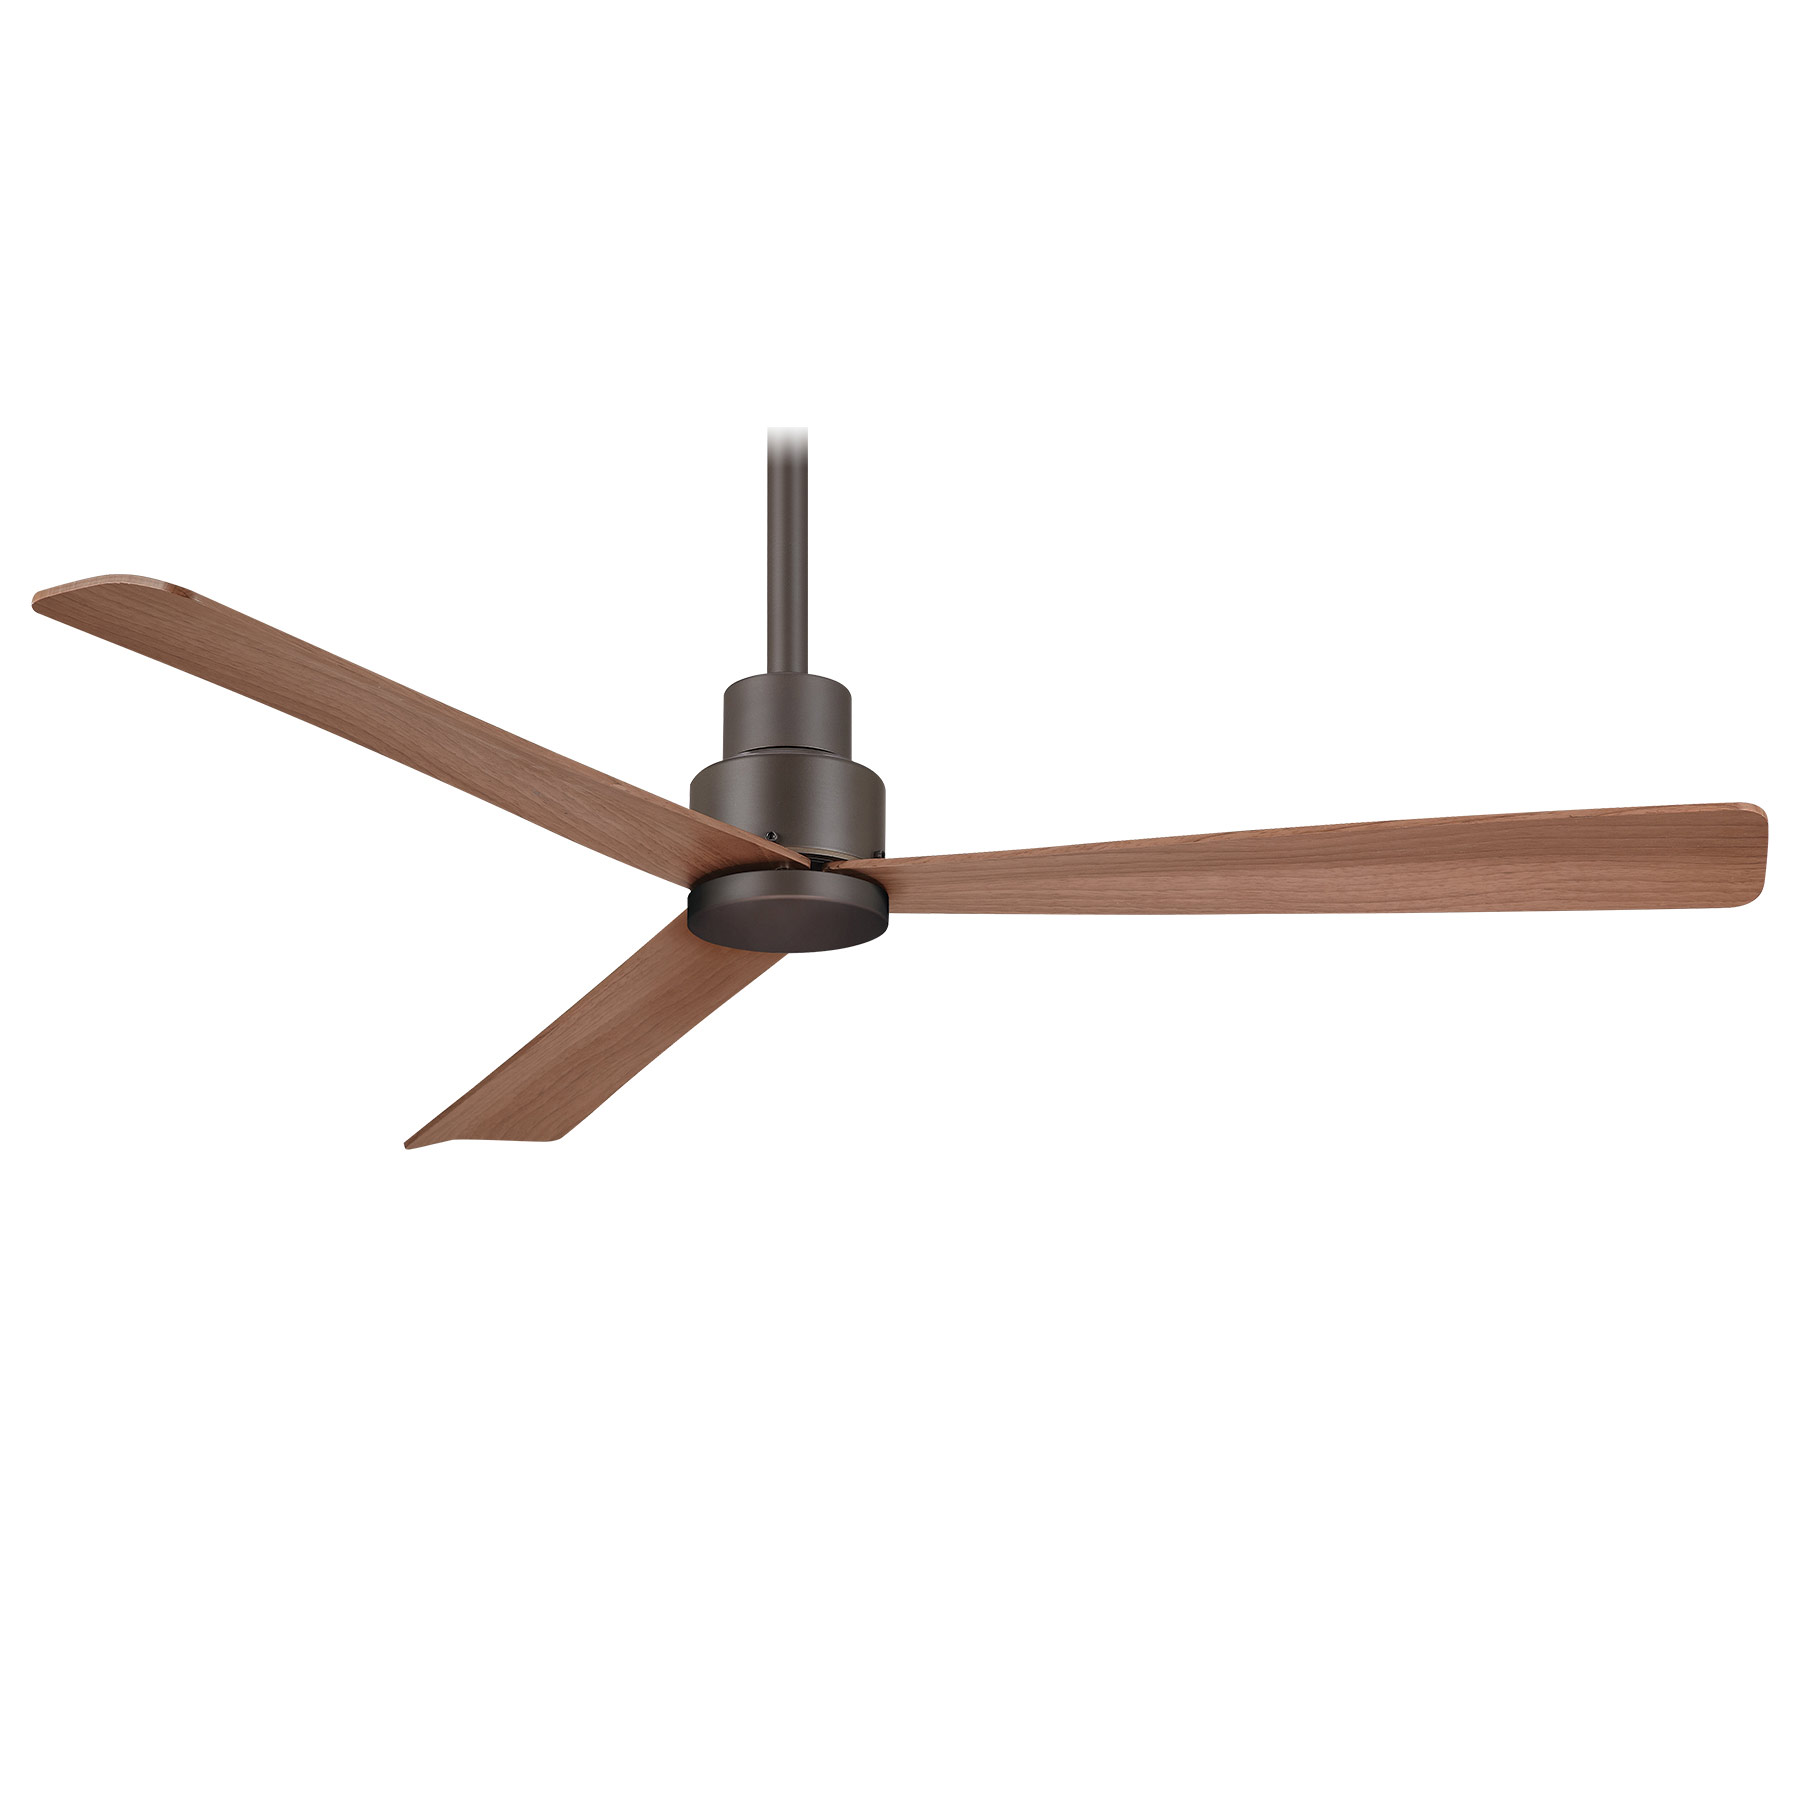 Simple outdoor ceiling fan 52 inch by minka aire f787 orb simple outdoor ceiling fan 52 inch download image aloadofball